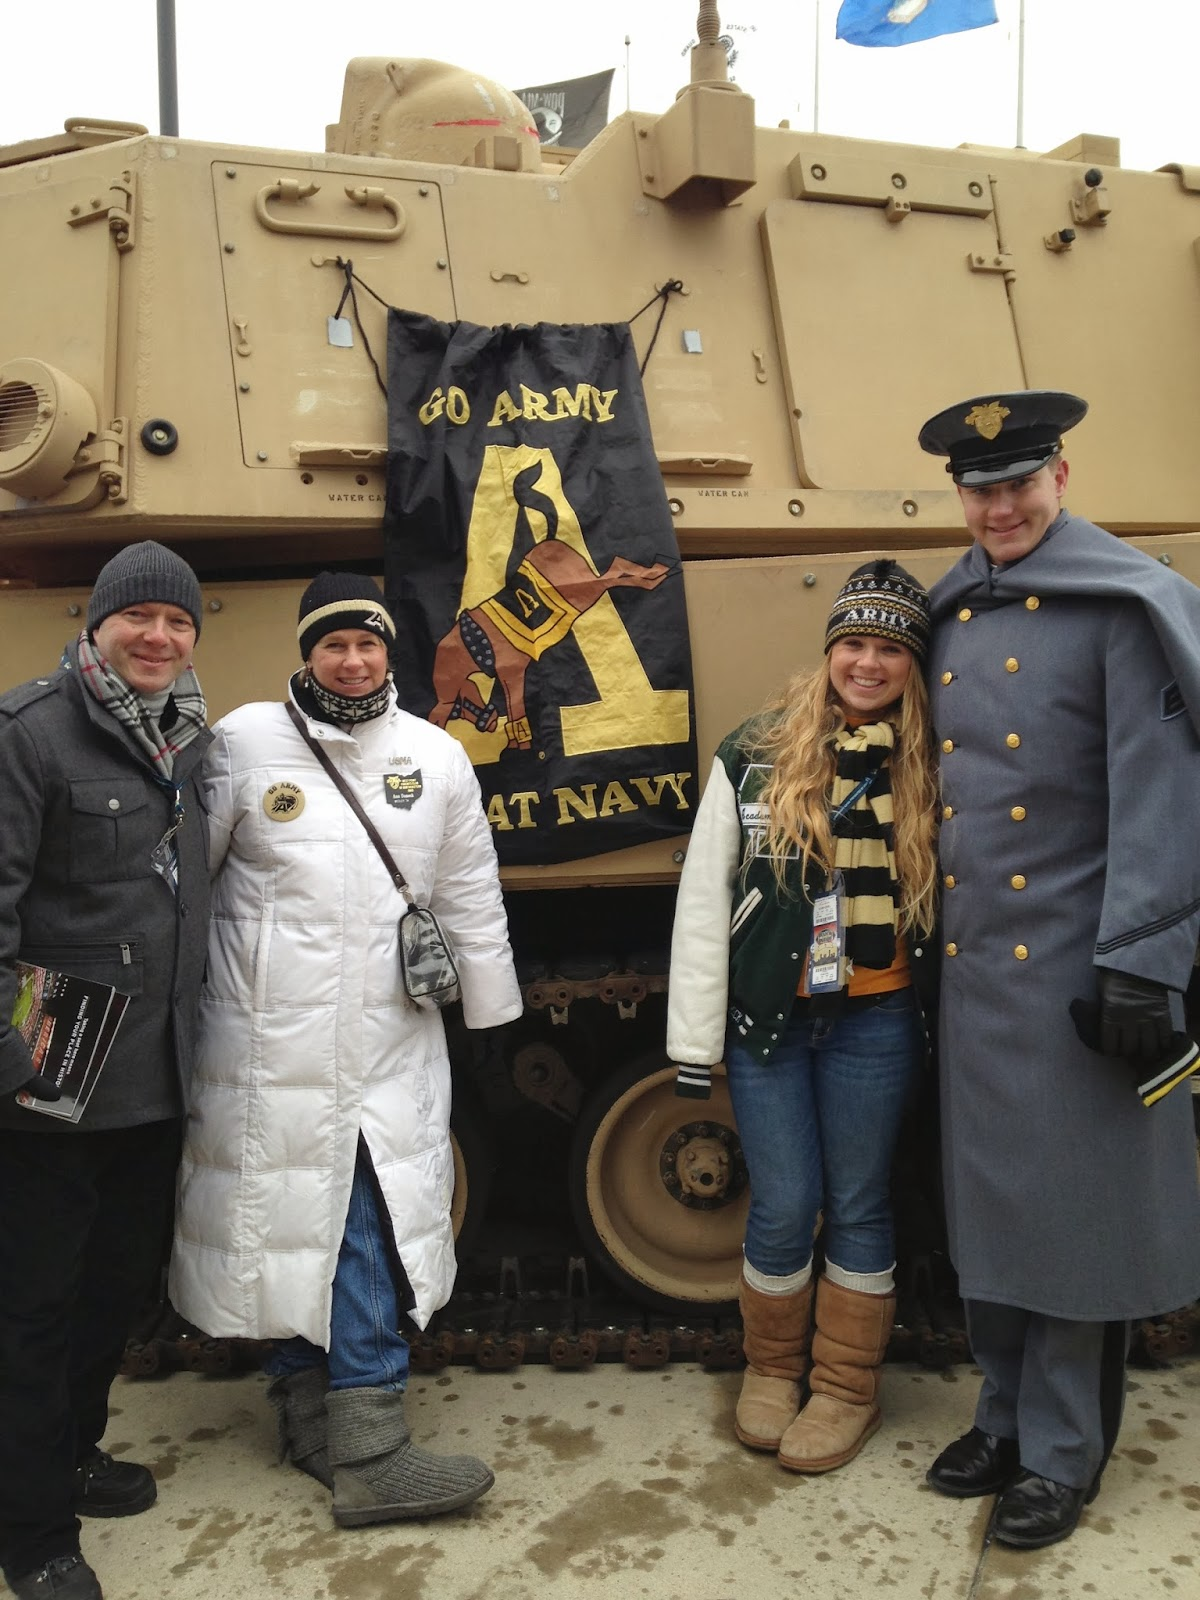 Army-Navy game picture, December 14, 2013